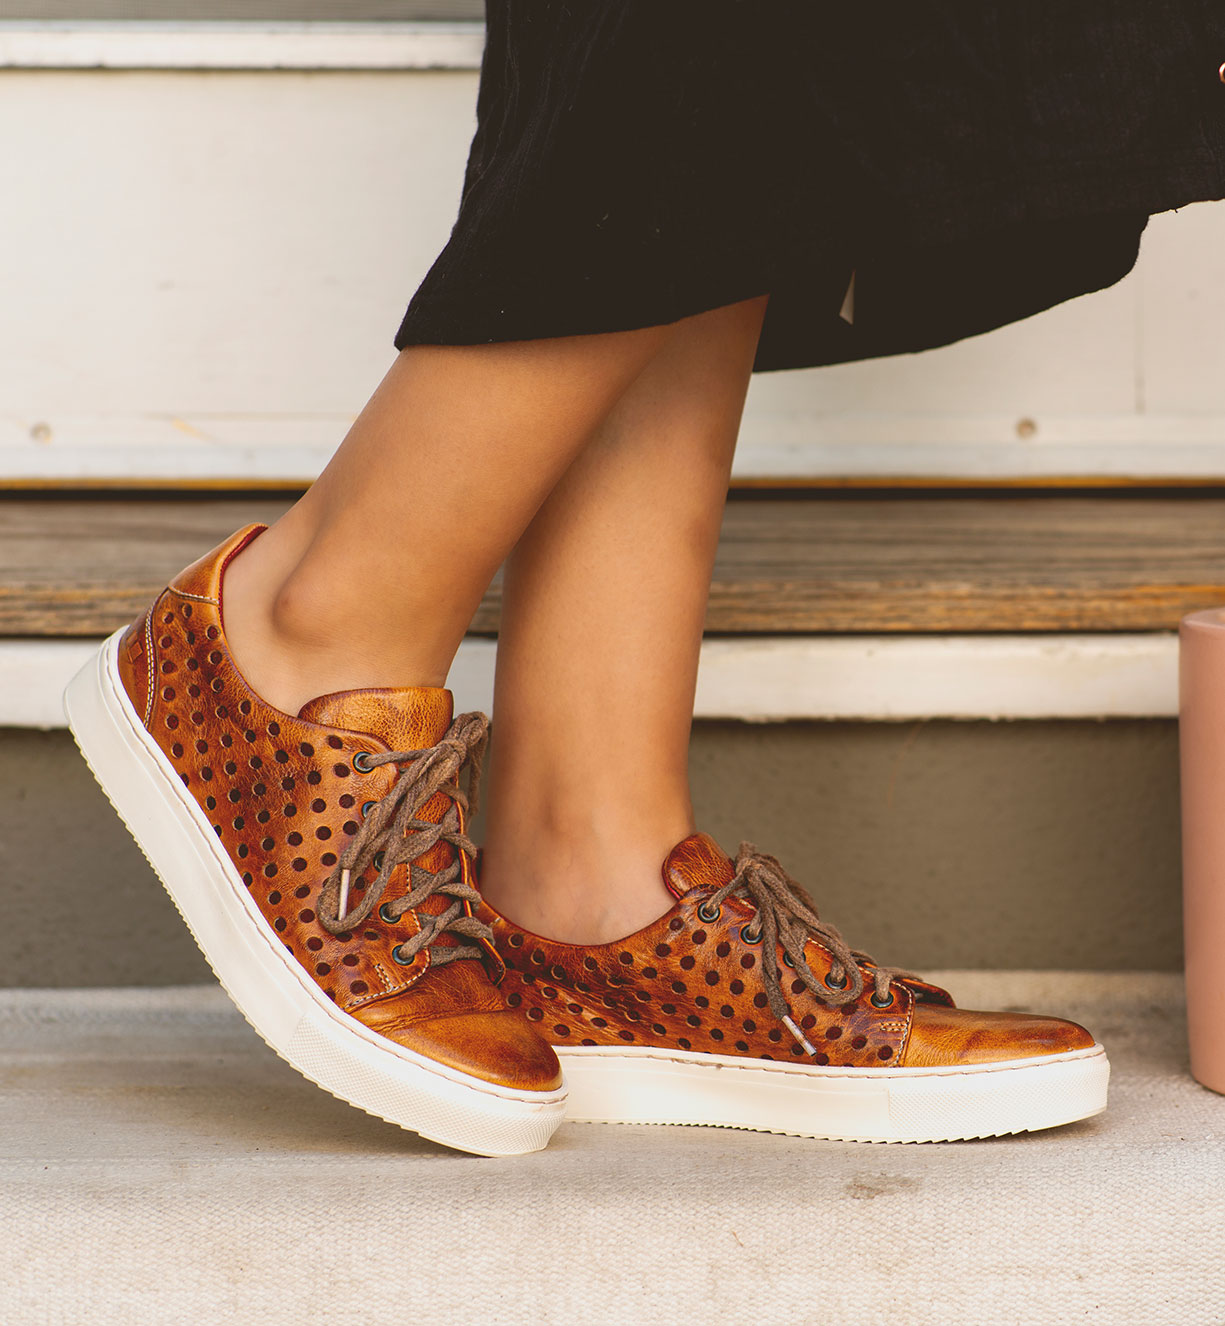 Woman's foot wearing summer style shoes sneakers with laces